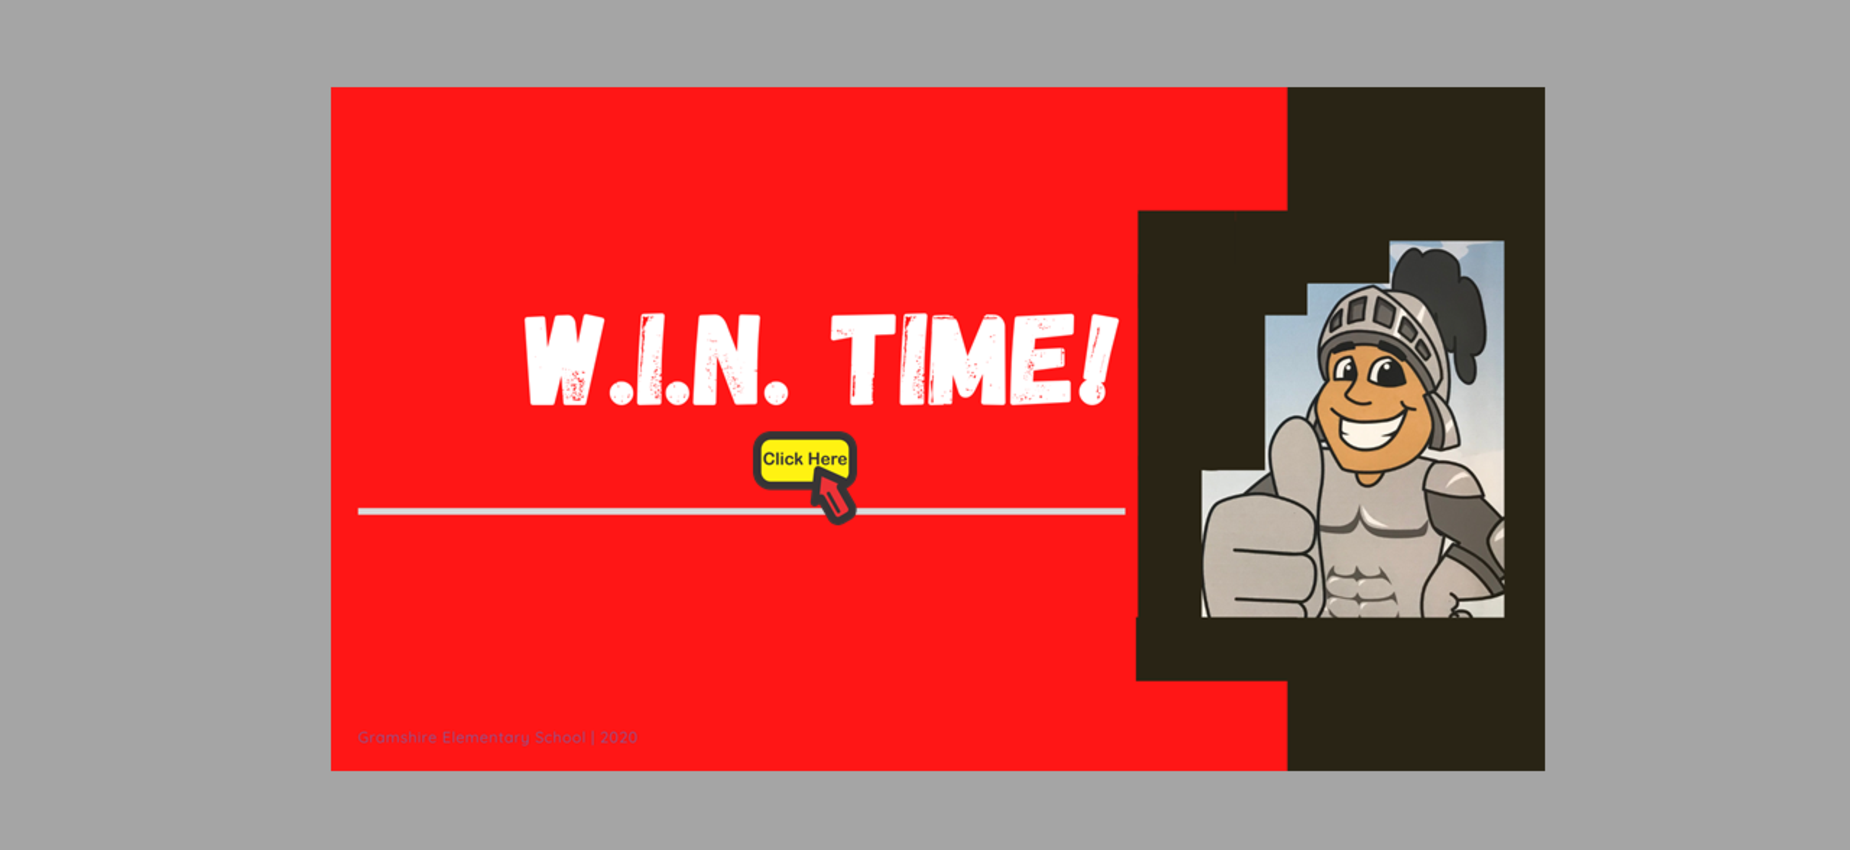 W.I.N. Time Graphic